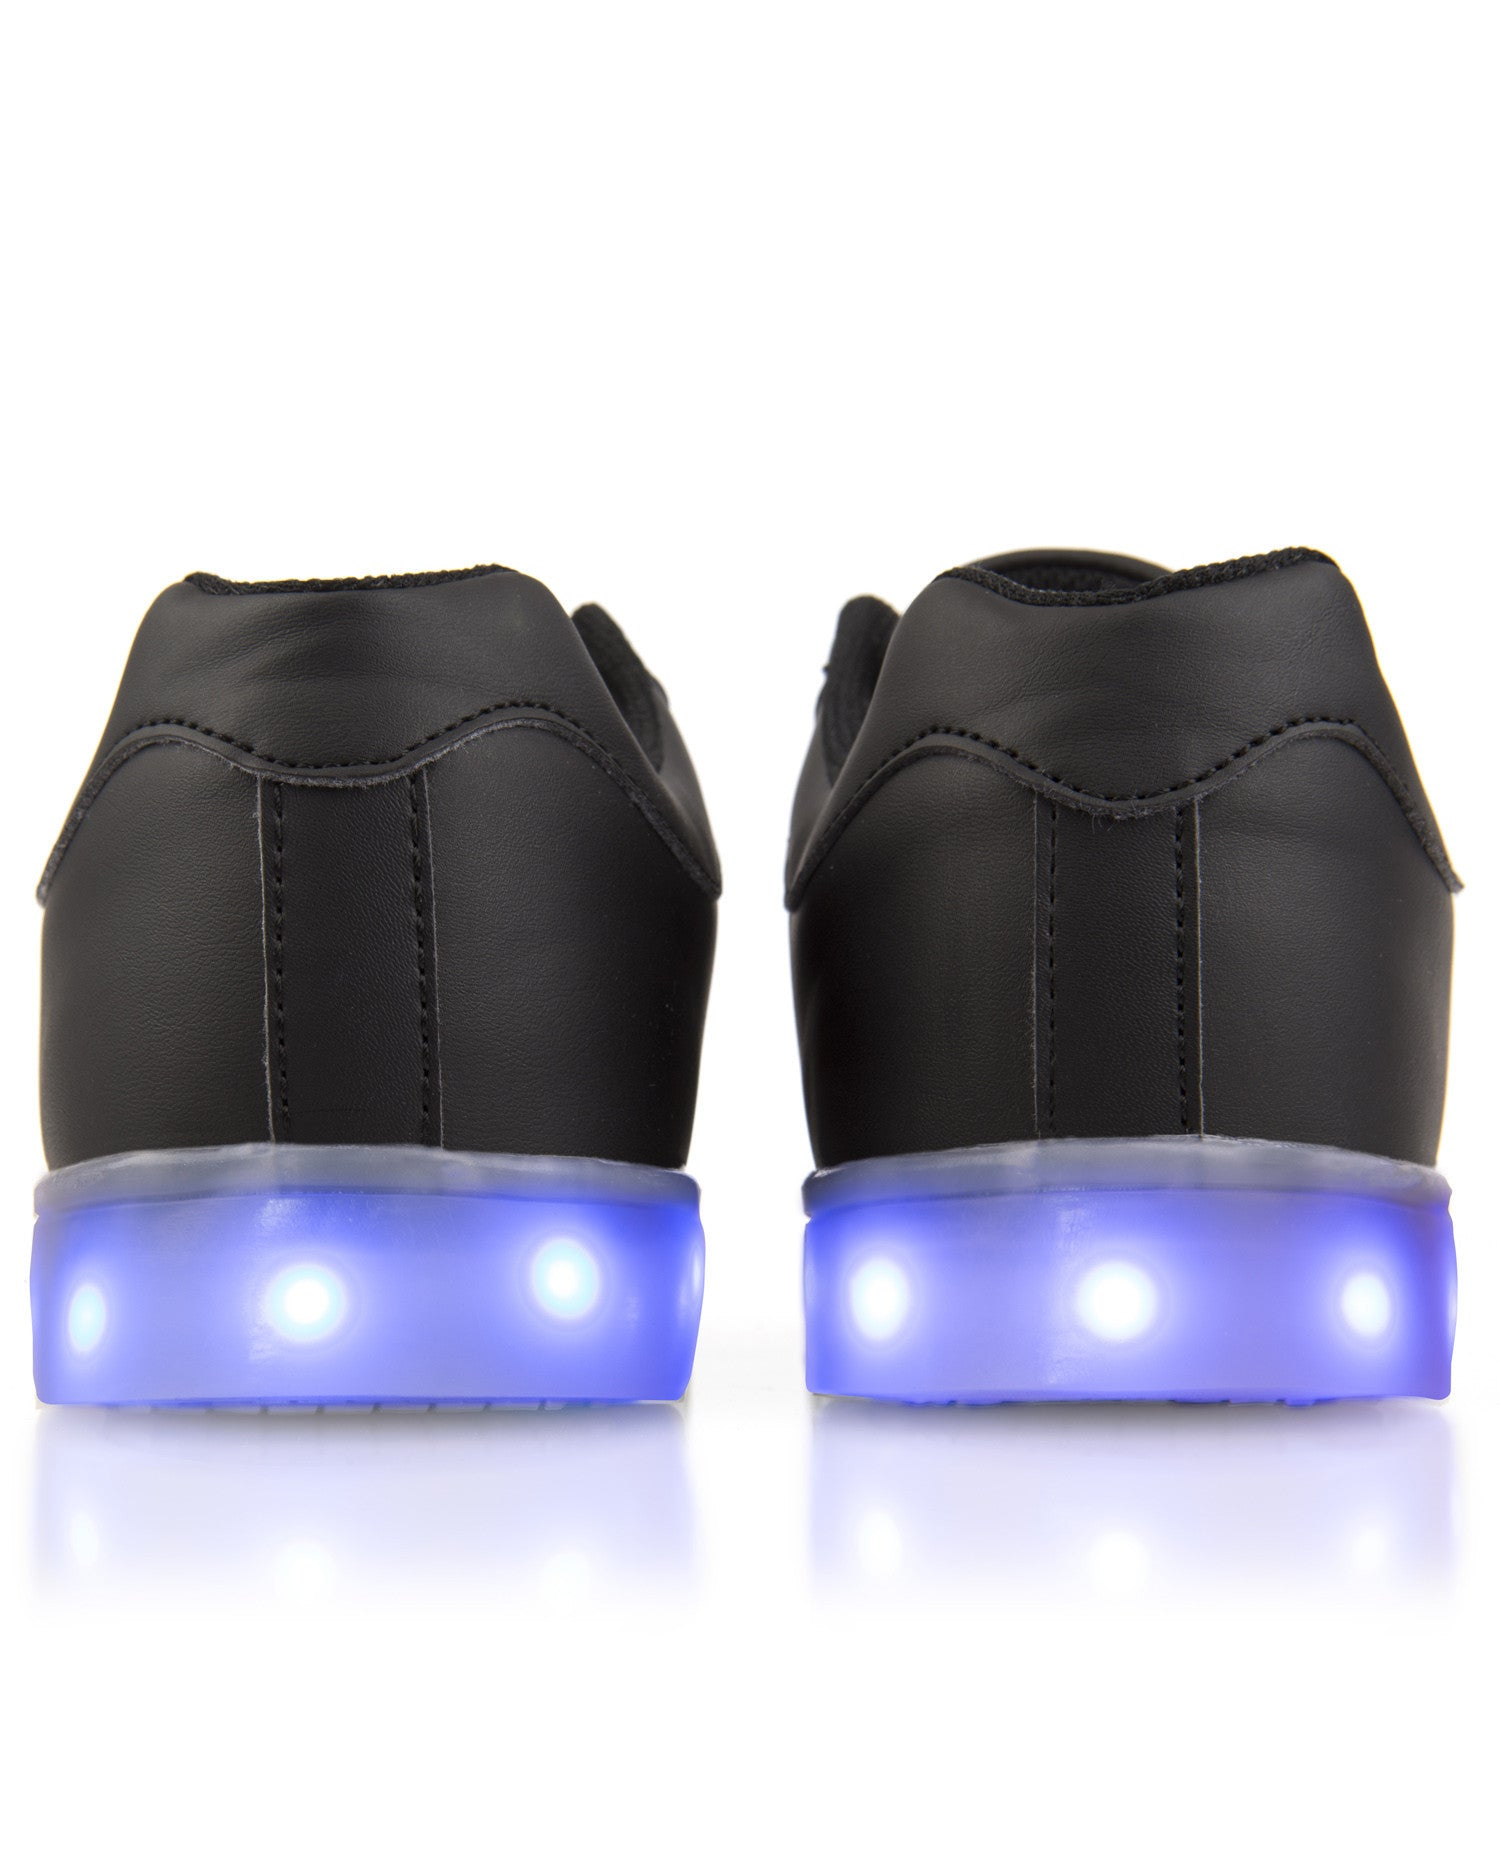 Electric Shoes - The Original - Electric Styles | World's Number 1 Light Up Shoe Store - {product_type}} -  - 9